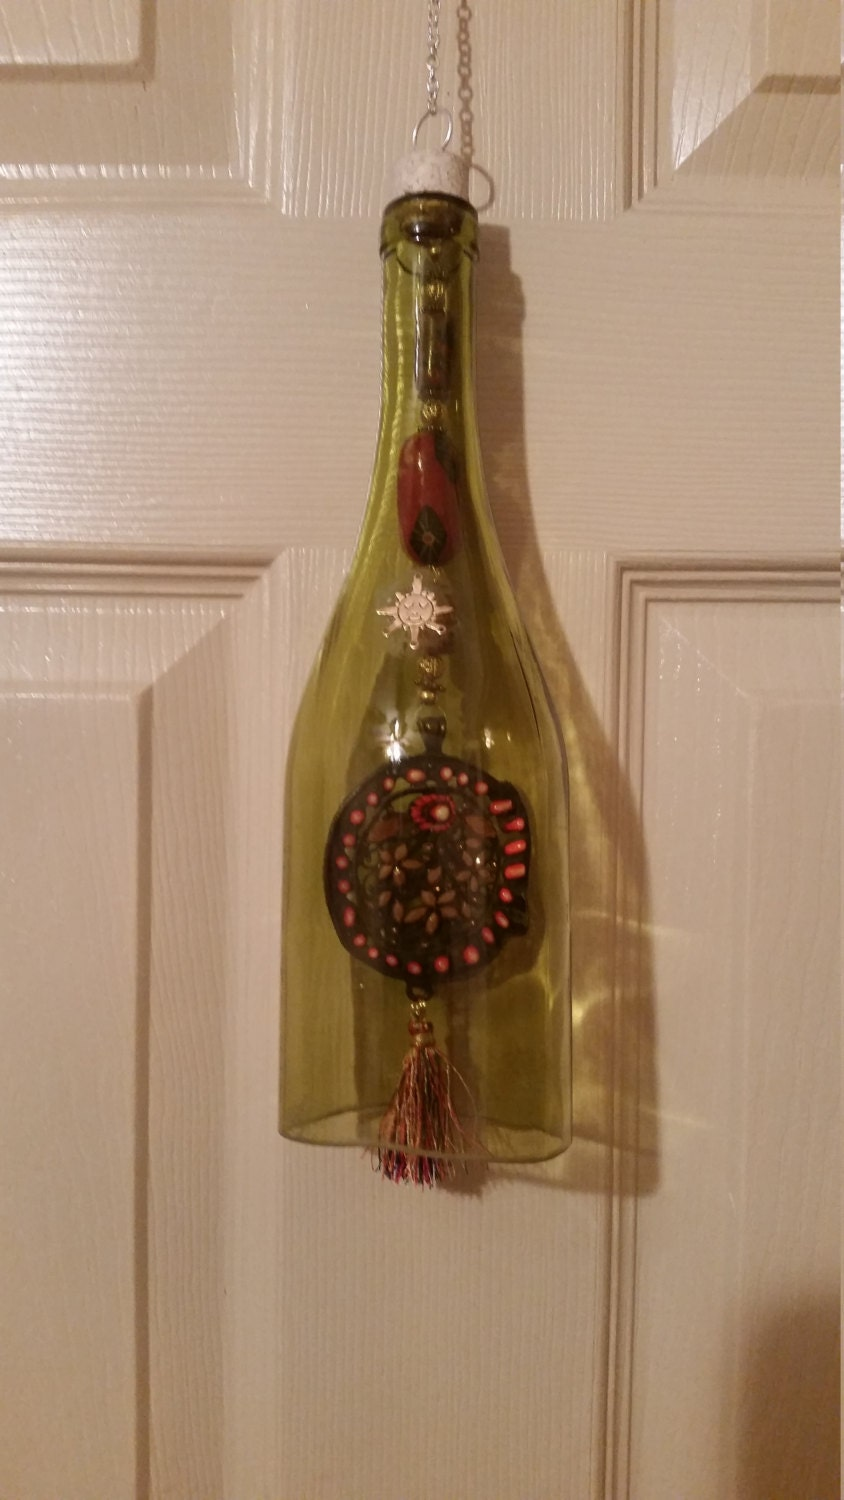 recycled green wine bottle wind chime